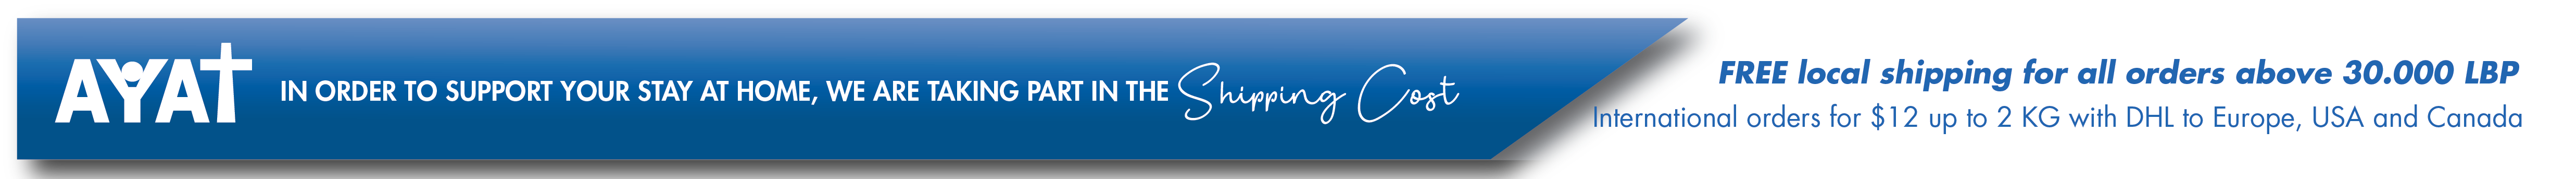 Low shipping cost